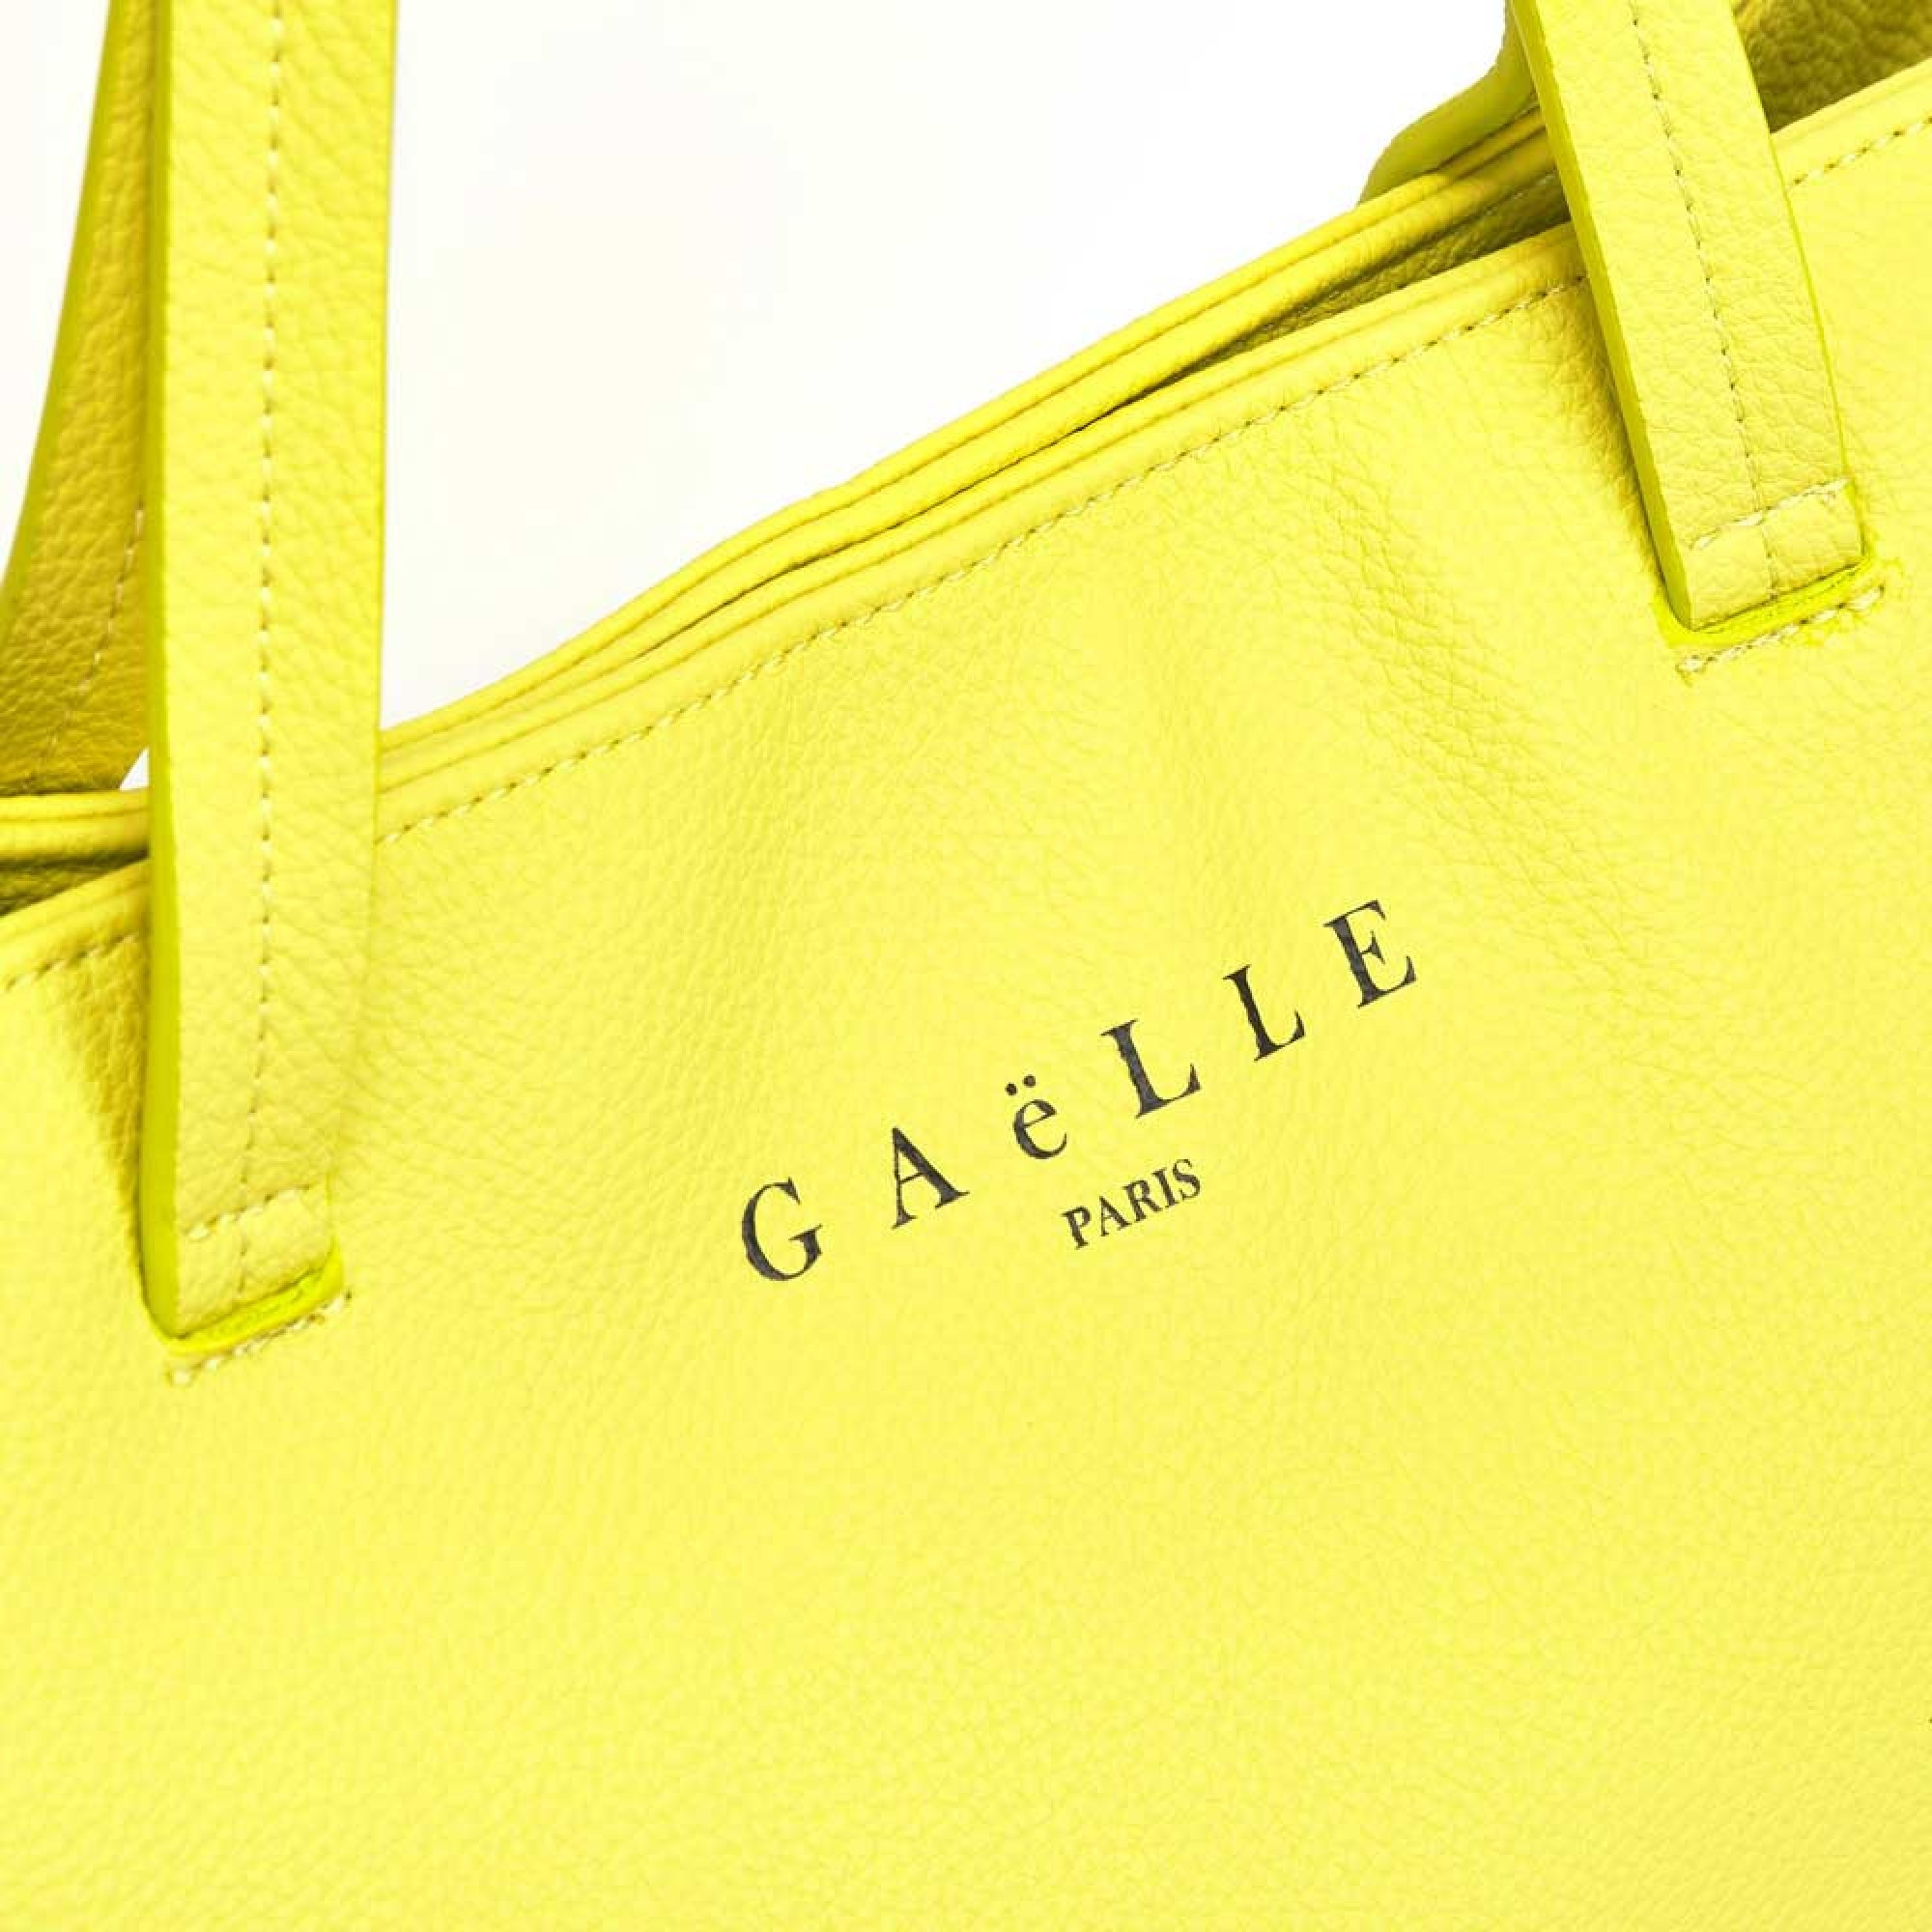 SHOPPER - GBDA1426 - GAELLE PARIS